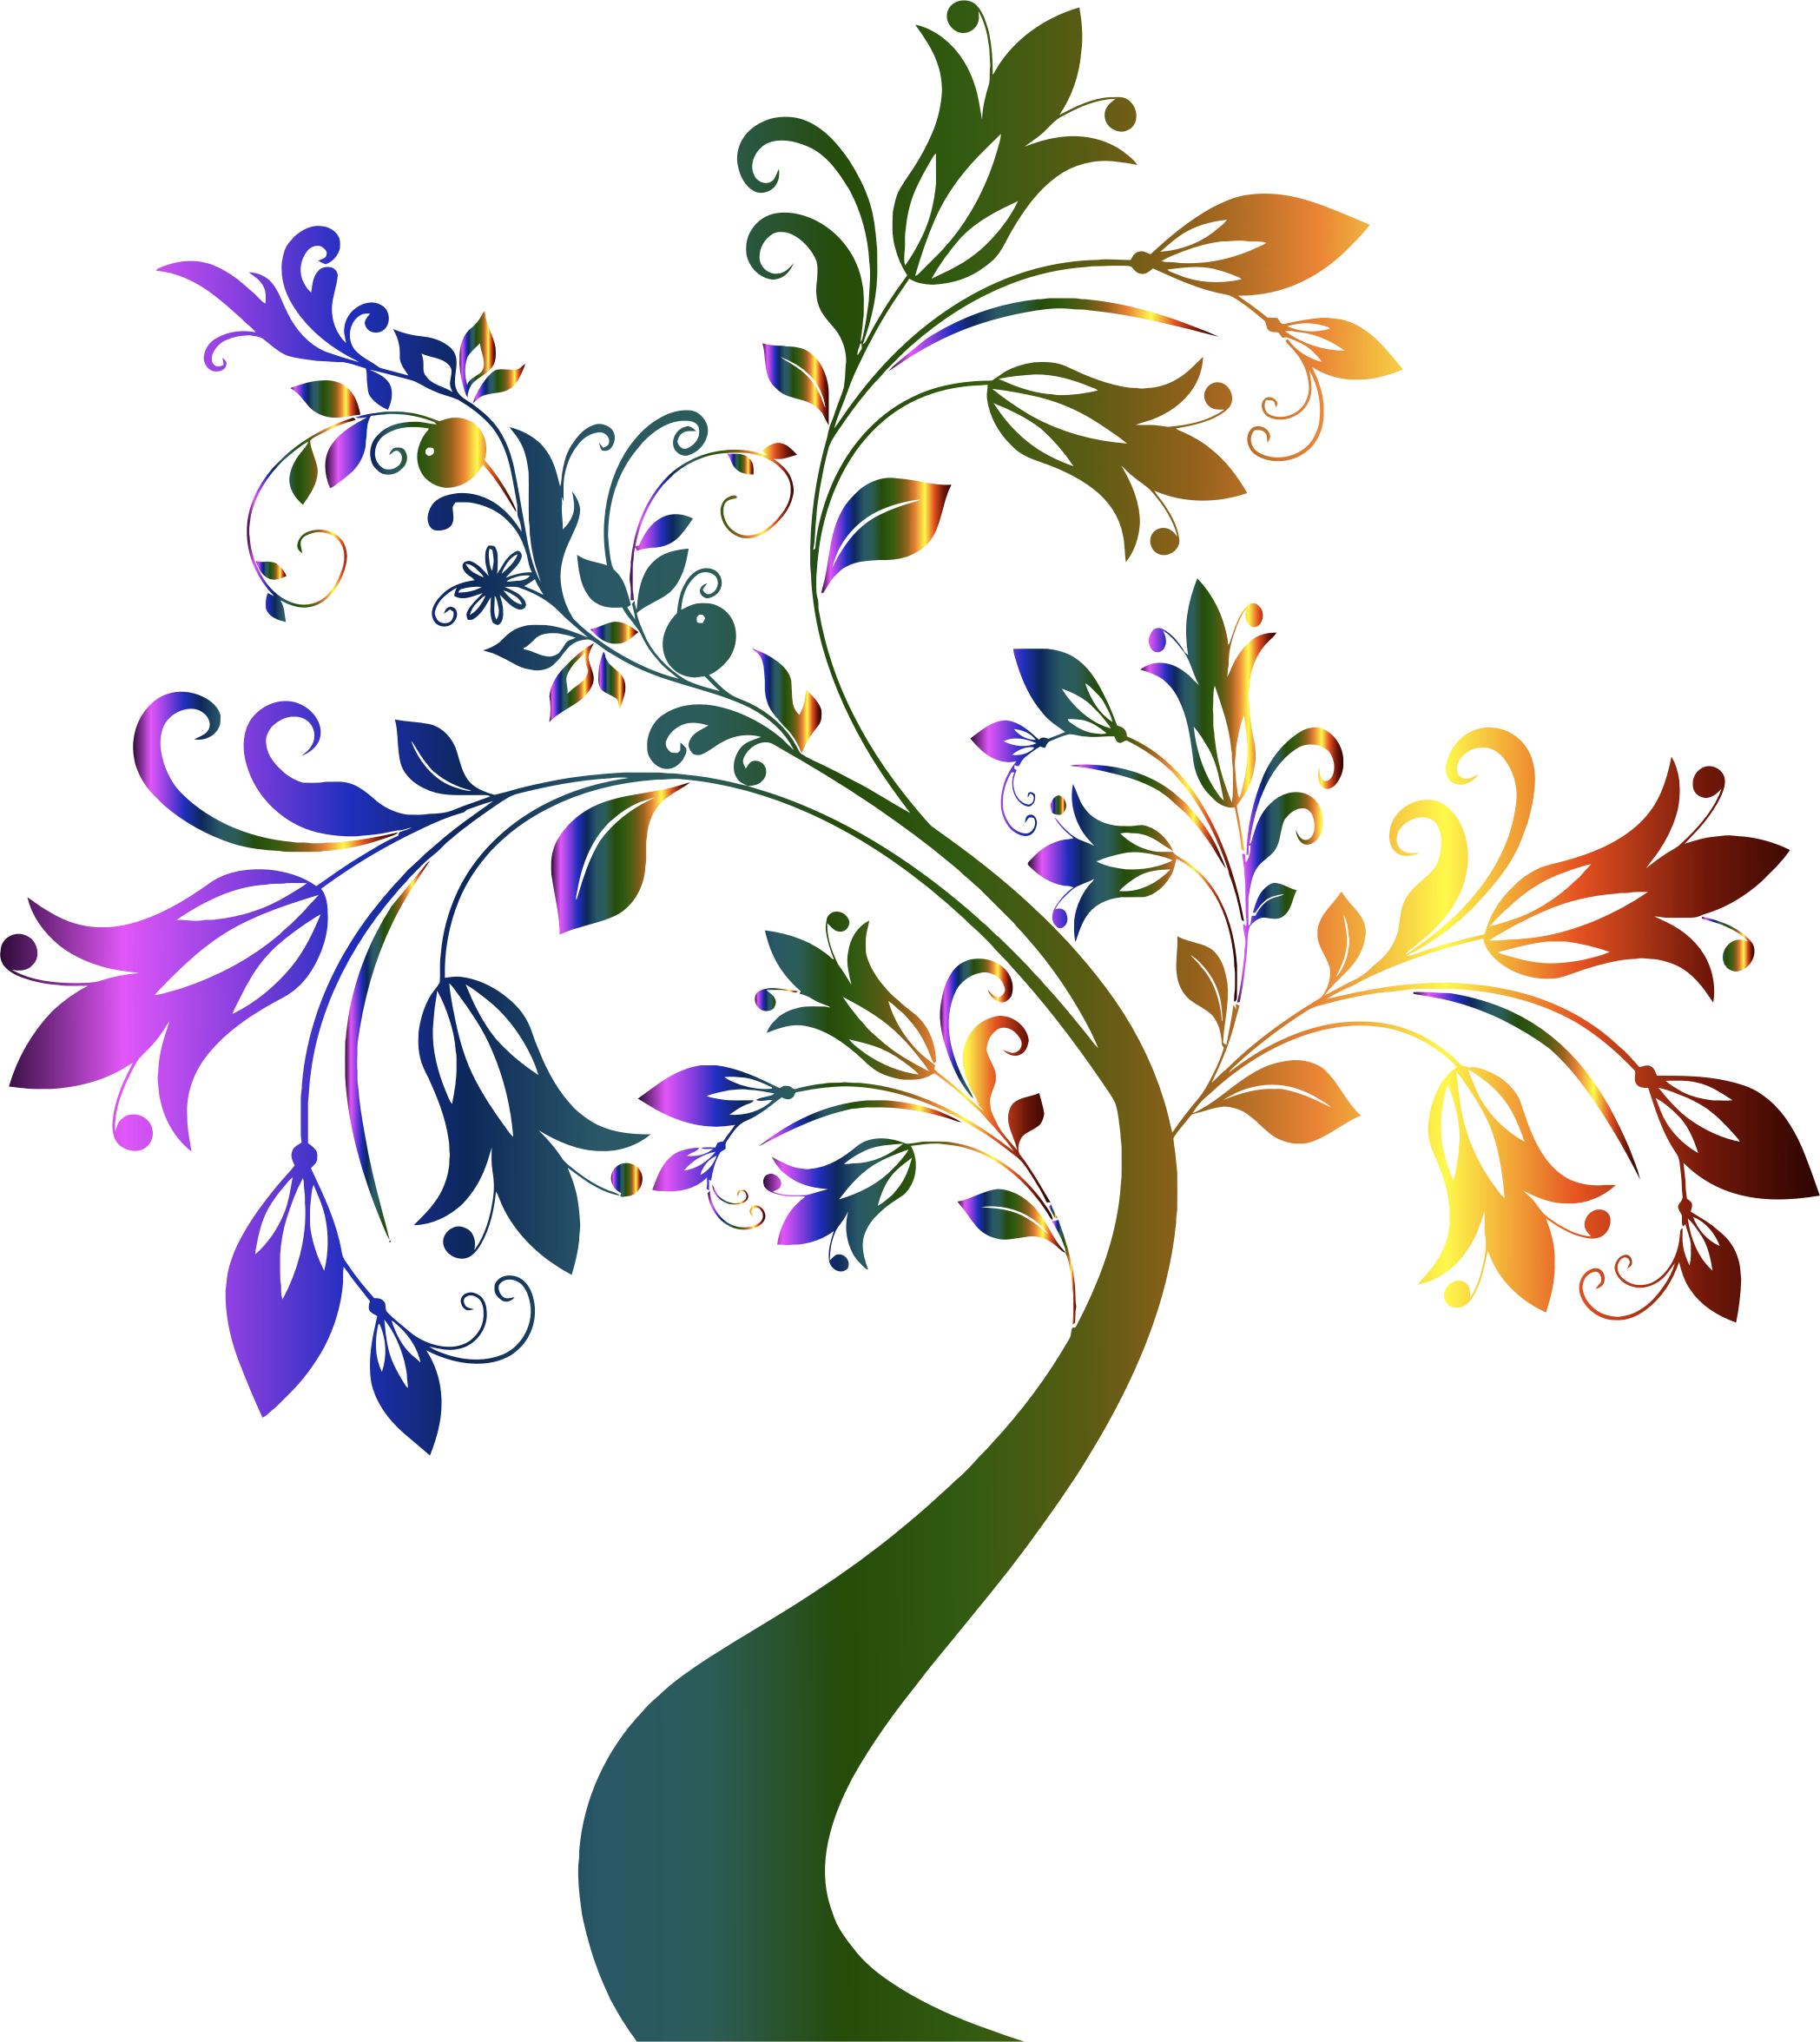 Tree clipart transparent background Tree Colorful Tree Clipart Floral